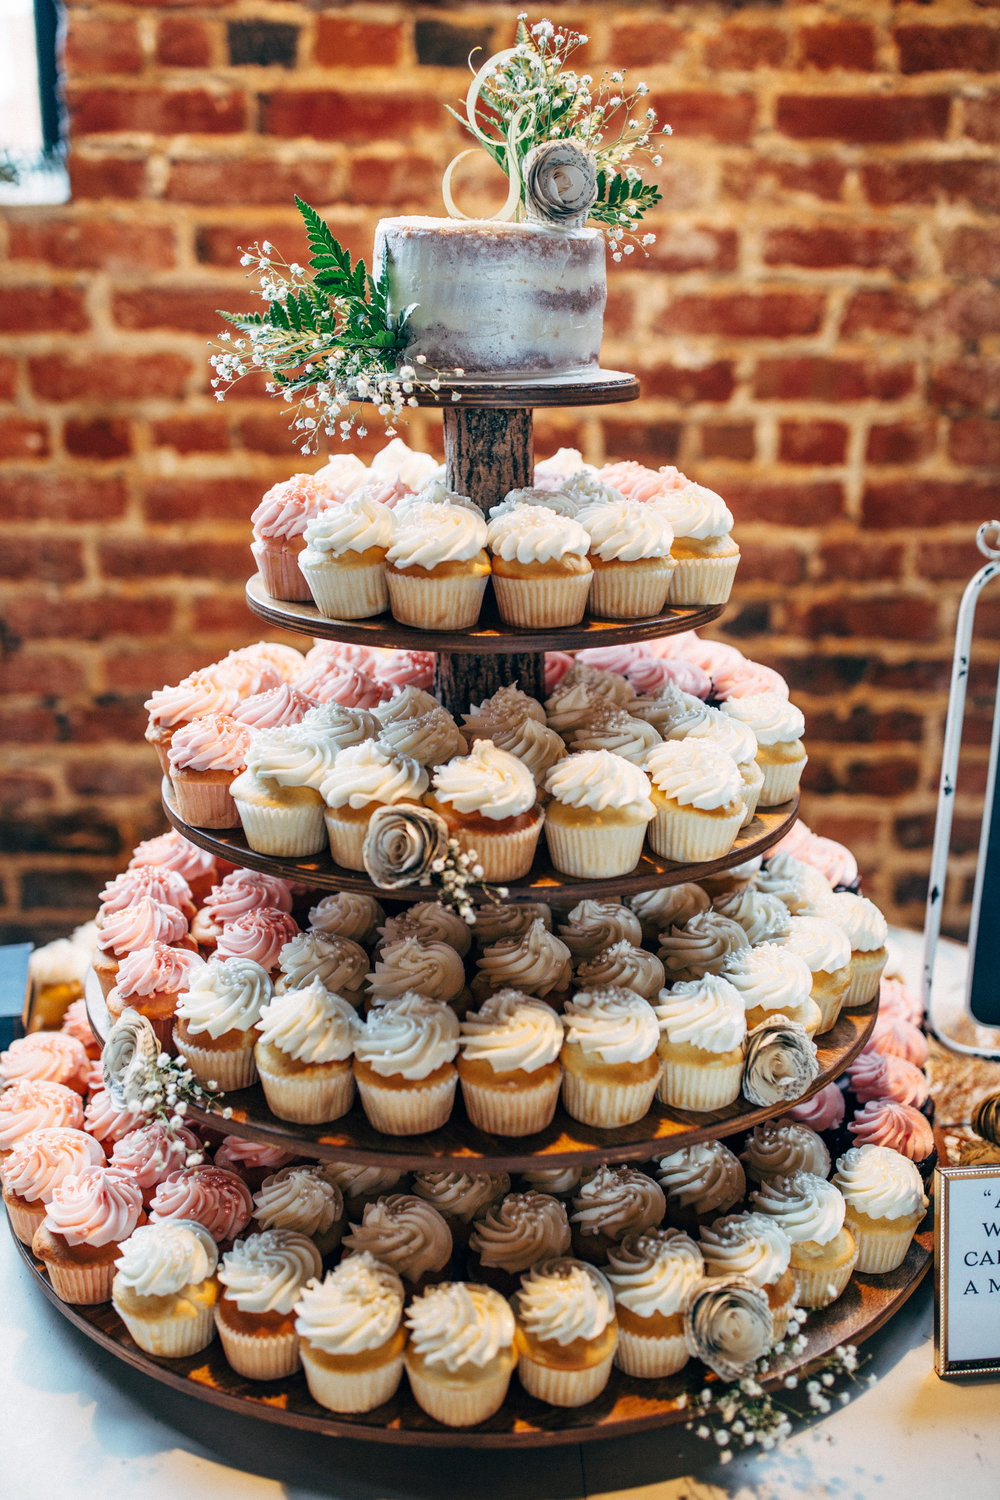 cupcake tower with wedding cake topper at reception